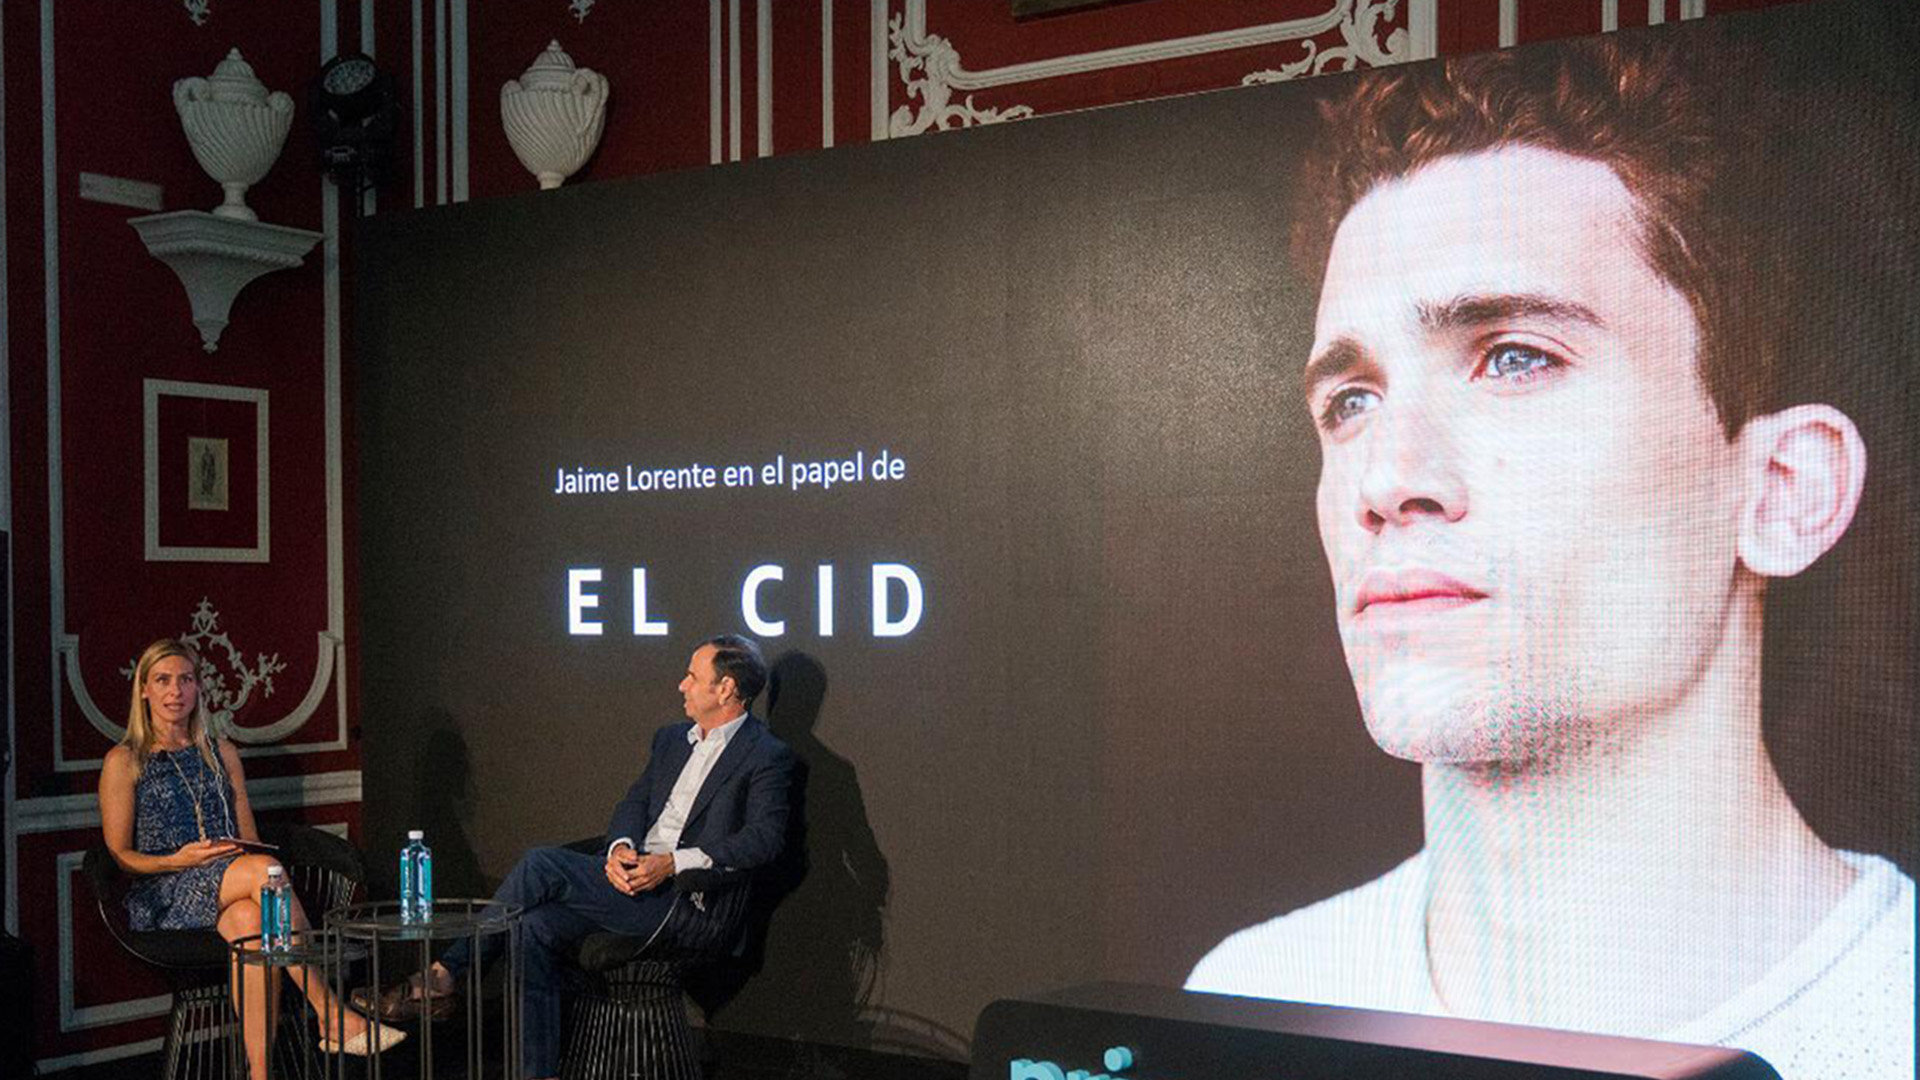 El Cid will be one of the biggest Amazon Original productions in Europe